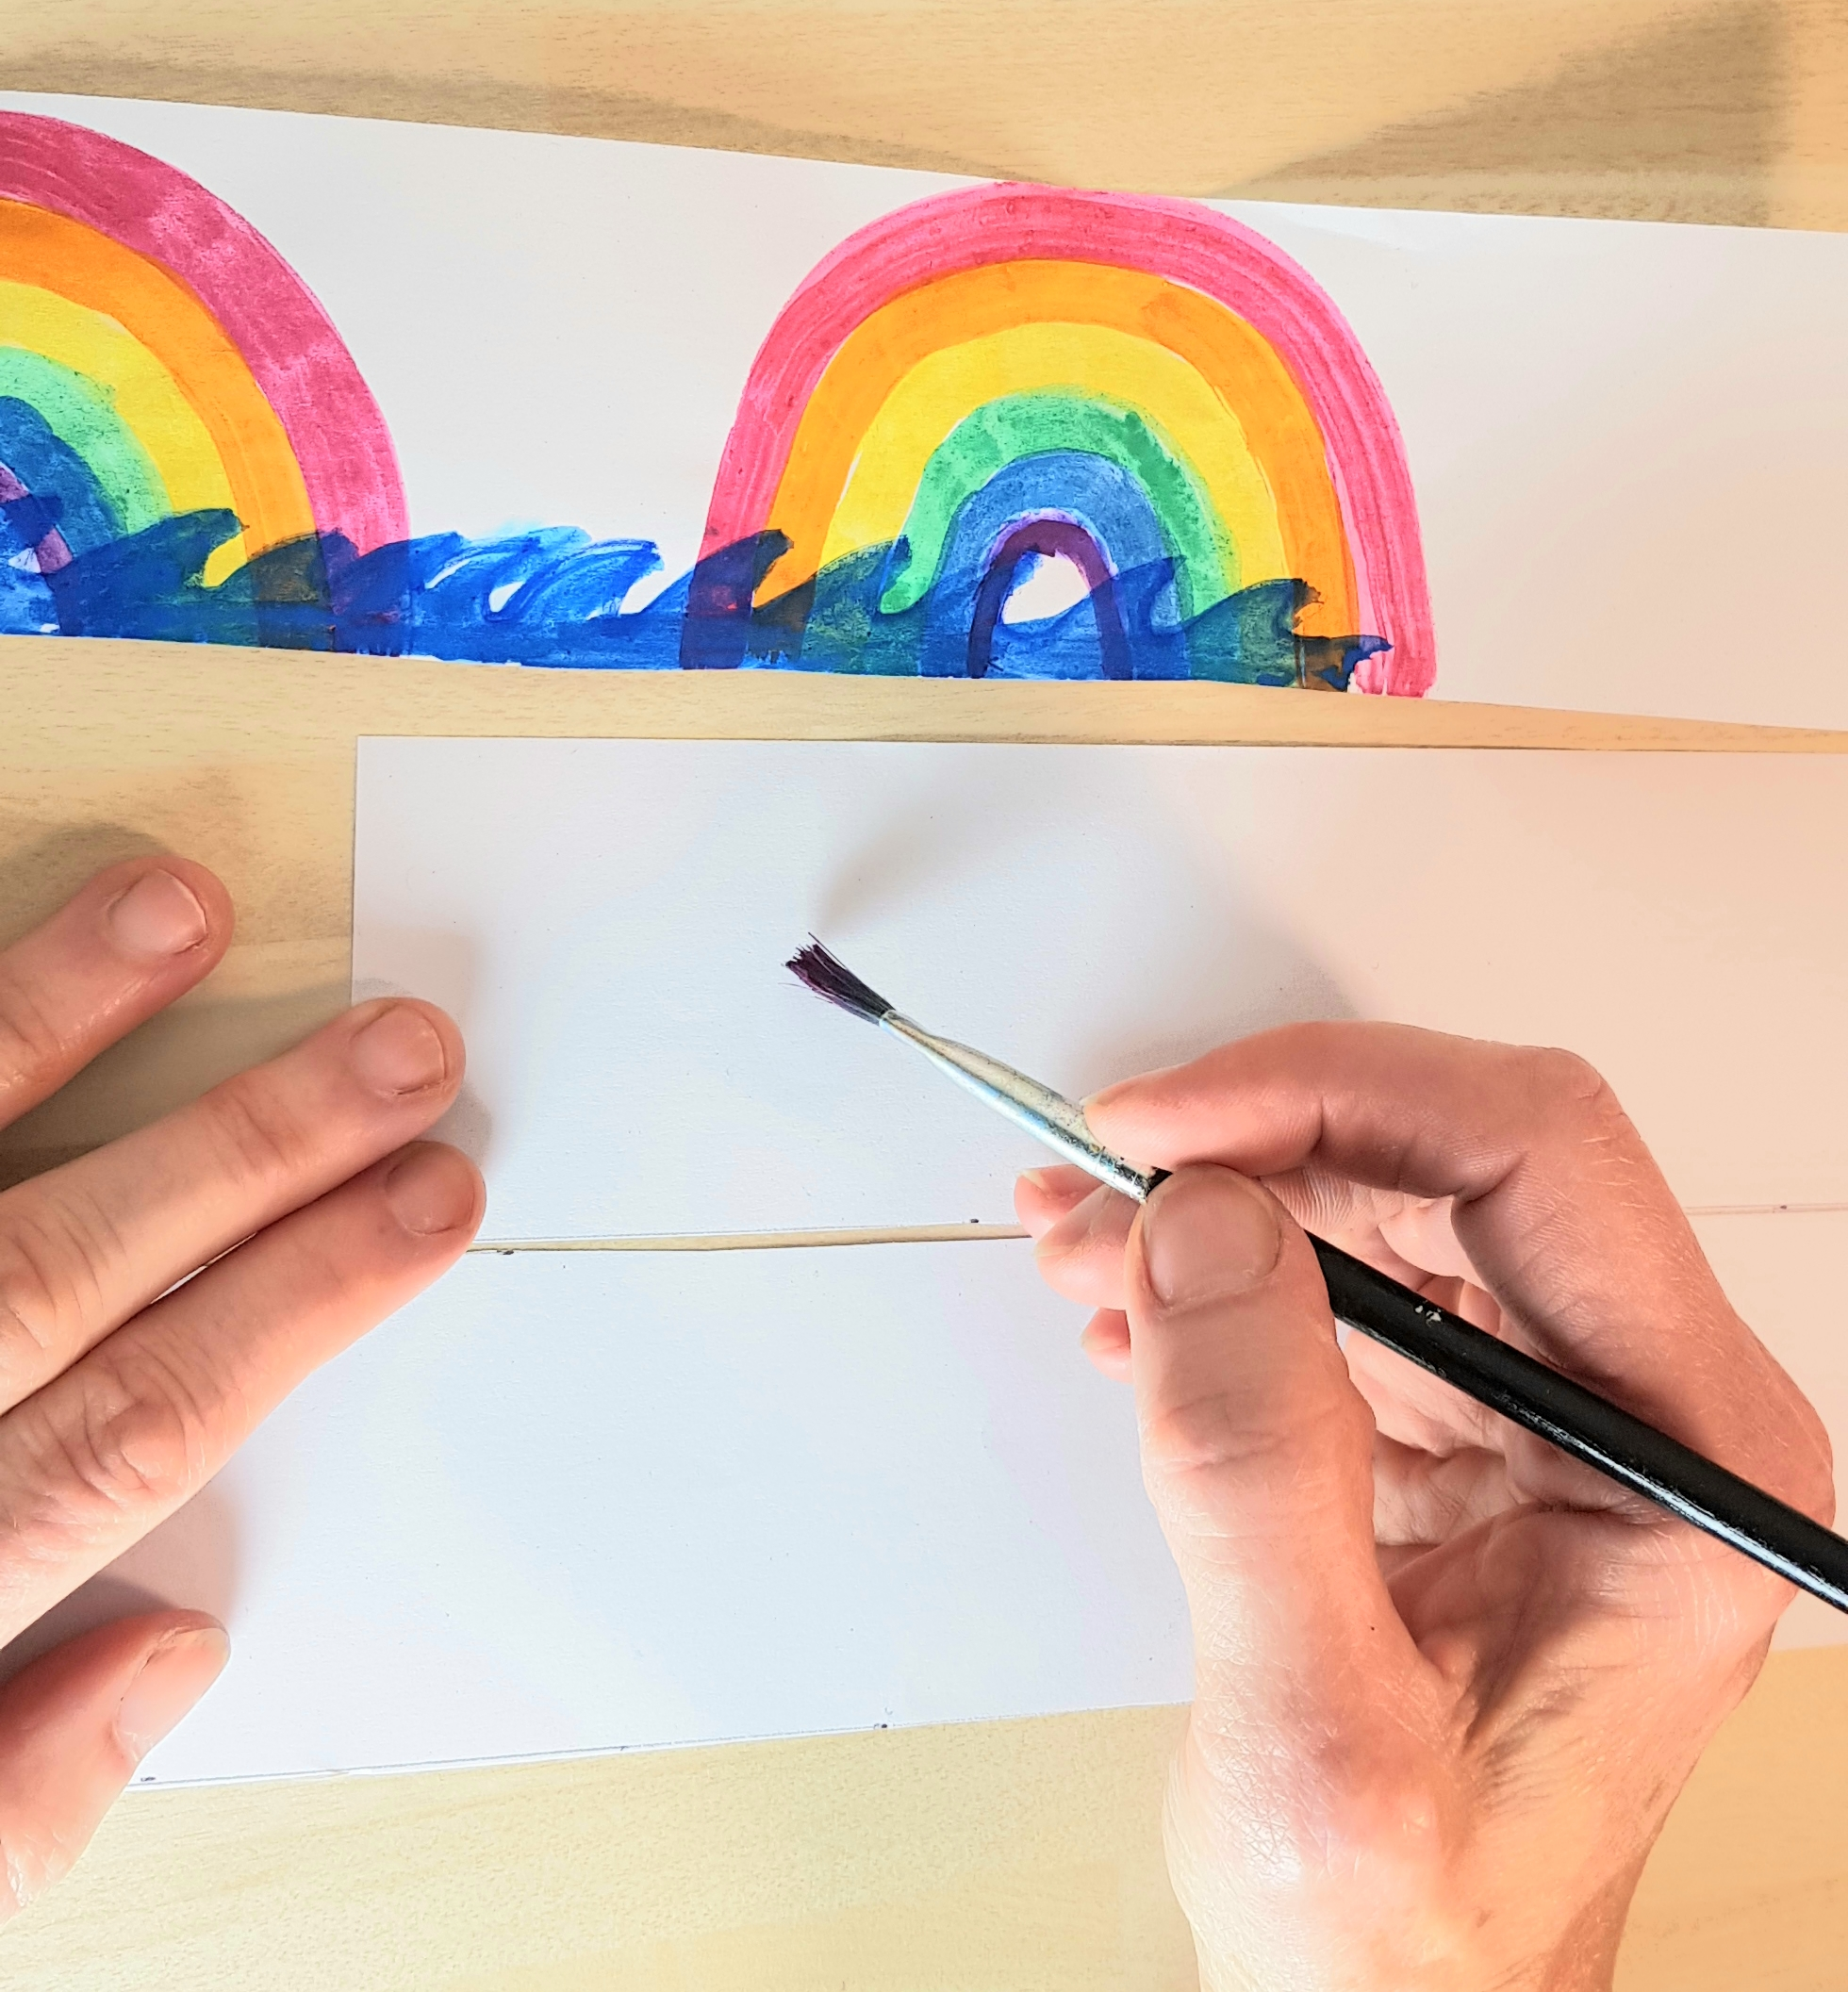 3 strips of paper have been cut out. One is decorated with rainbows and the ocean. Someone is preparing to start decorating the second strip of paper with a paintbrush.